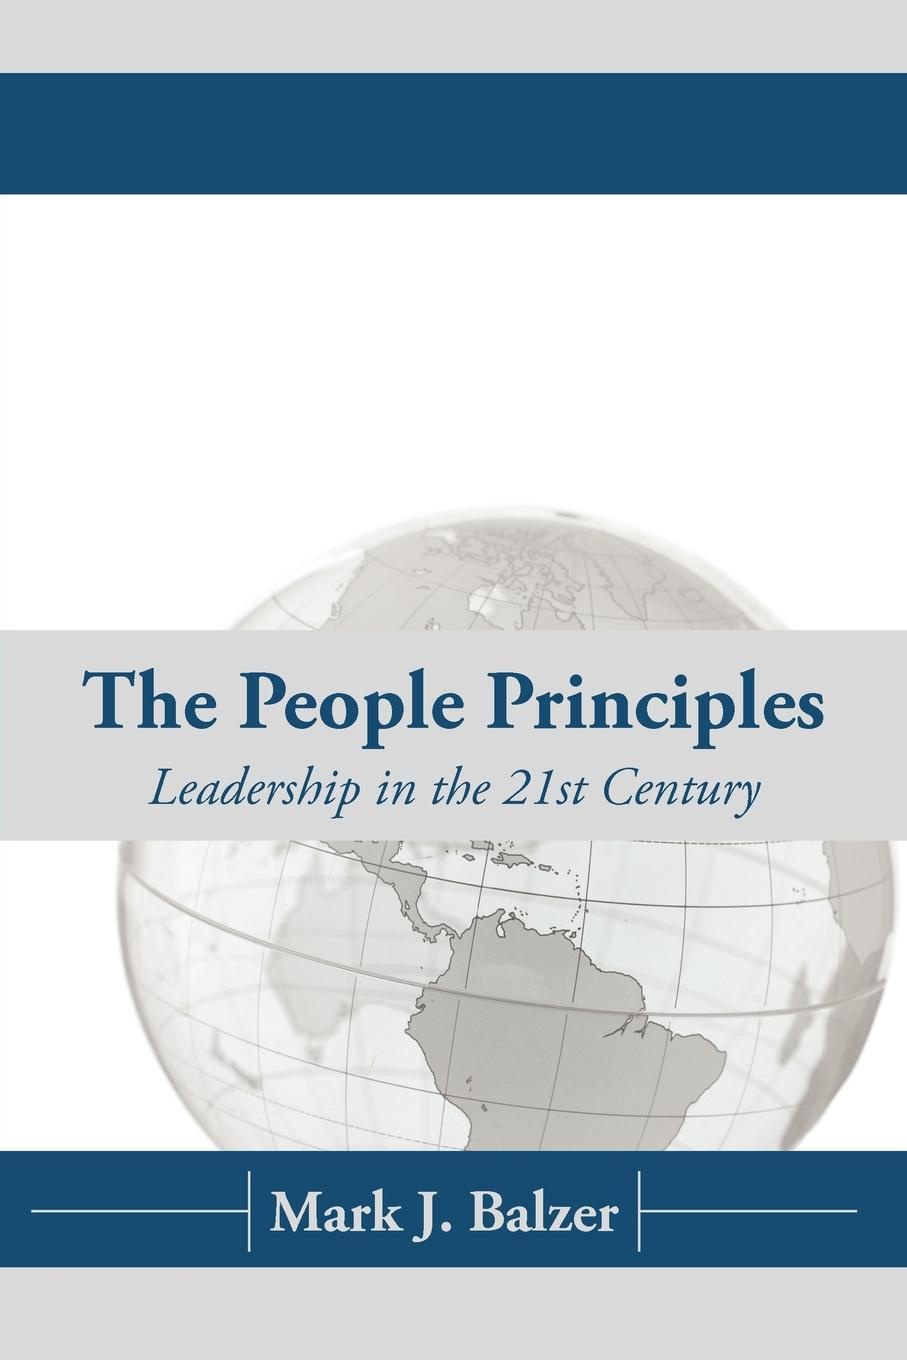 Фото - Mark J. Balzer The People Principles. Leadership in the 21st Century harald welzer climate wars what people will be killed for in the 21st century